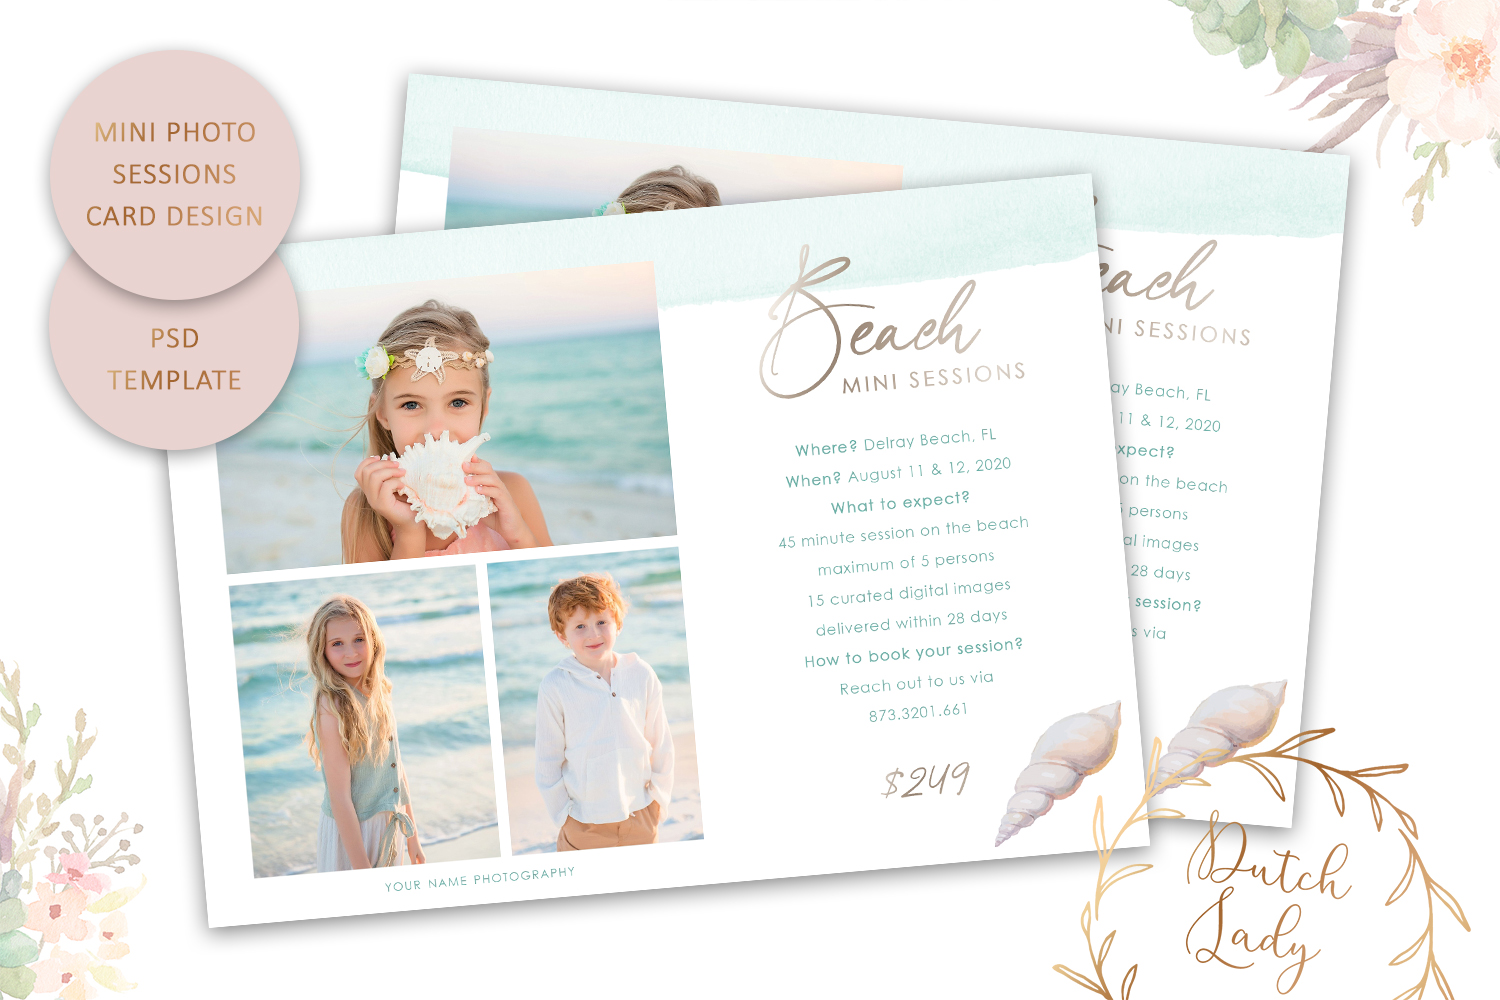 Download Free Psd Photo Session Card Template 62 Graphic By Daphnepopuliers for Cricut Explore, Silhouette and other cutting machines.